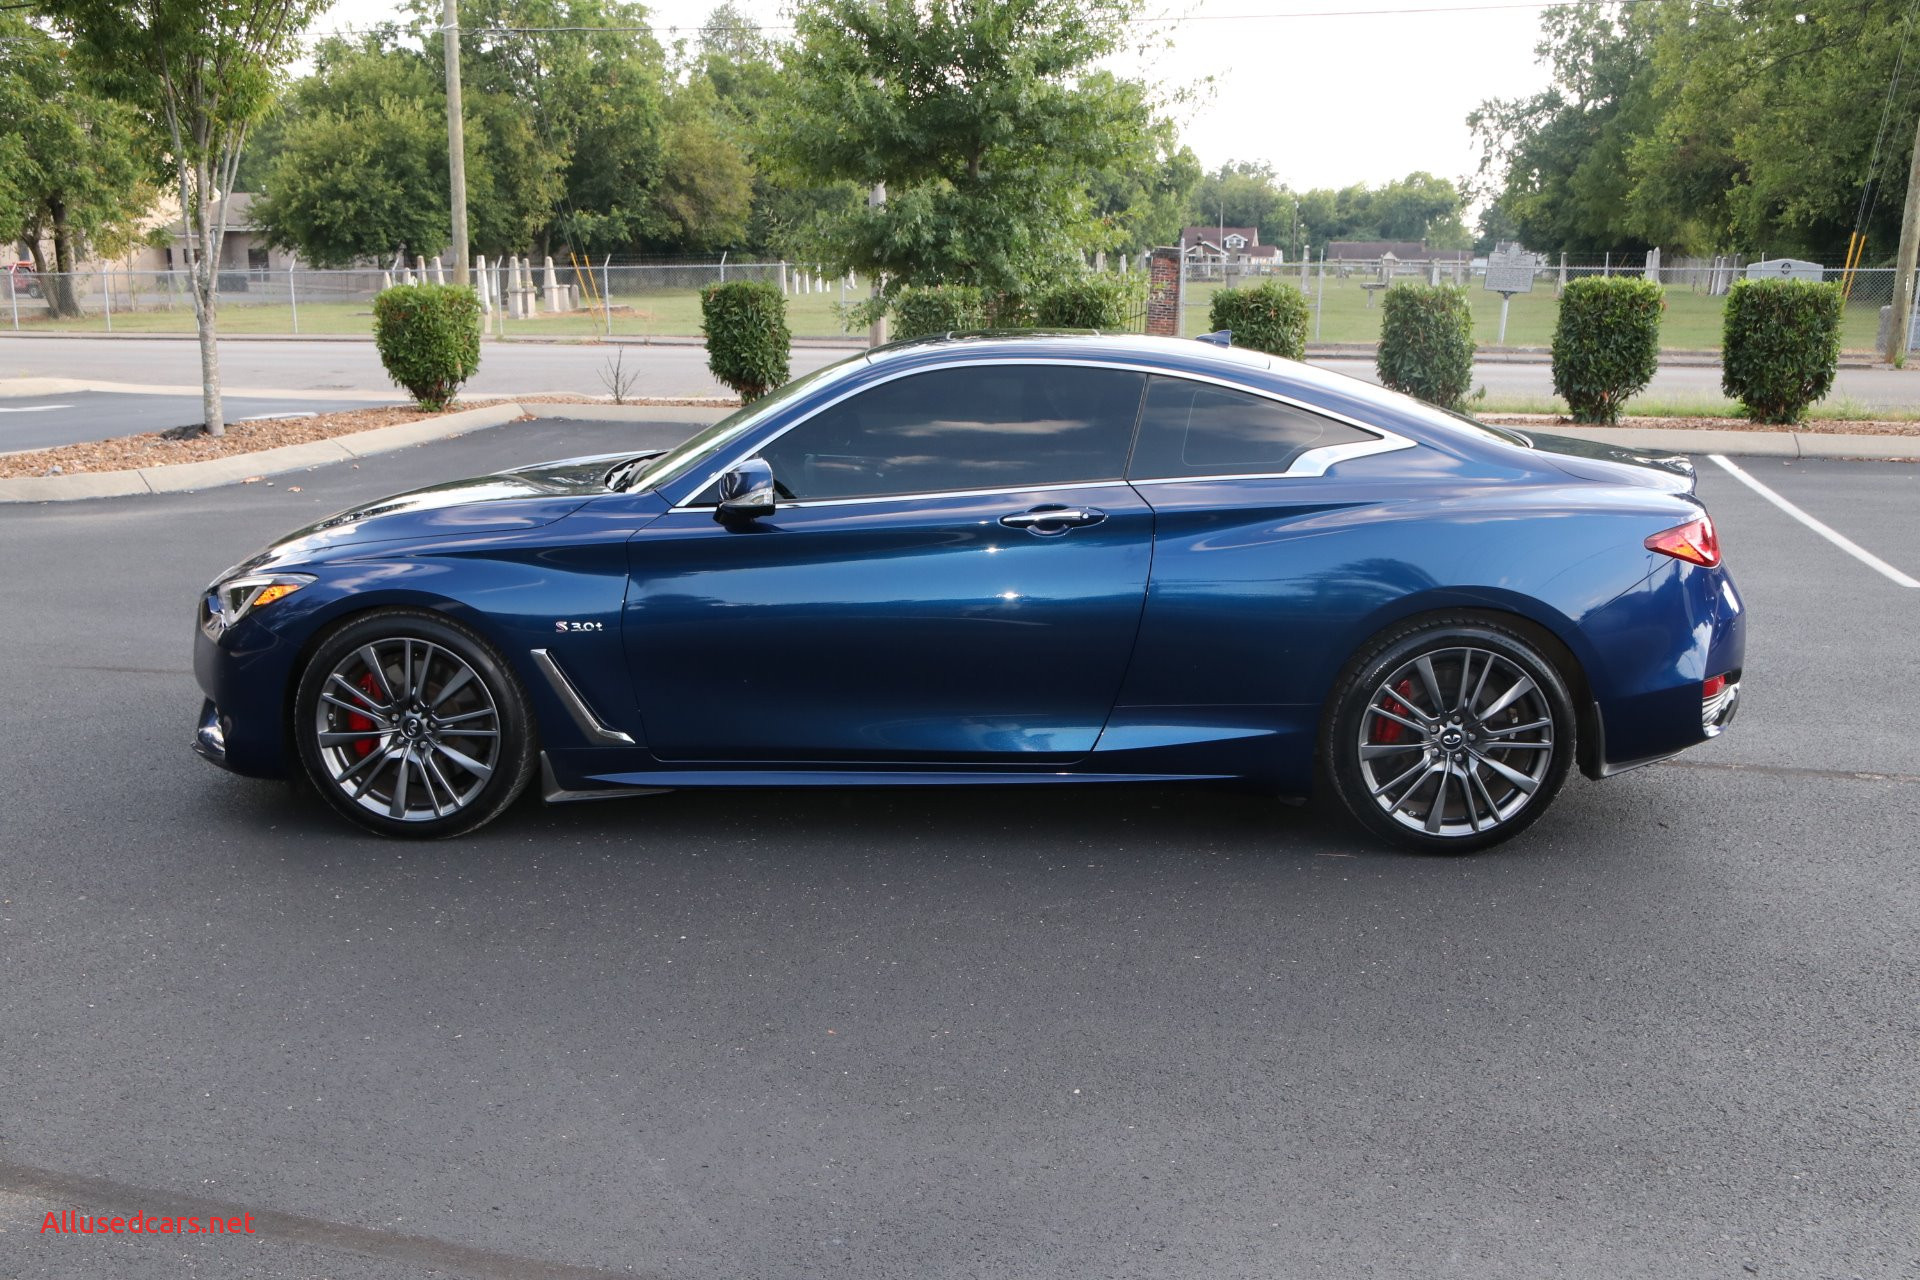 2017 Infiniti Q60 Awesome Used 2017 Infiniti Q60 Red Sport 400 for Sale $35 950